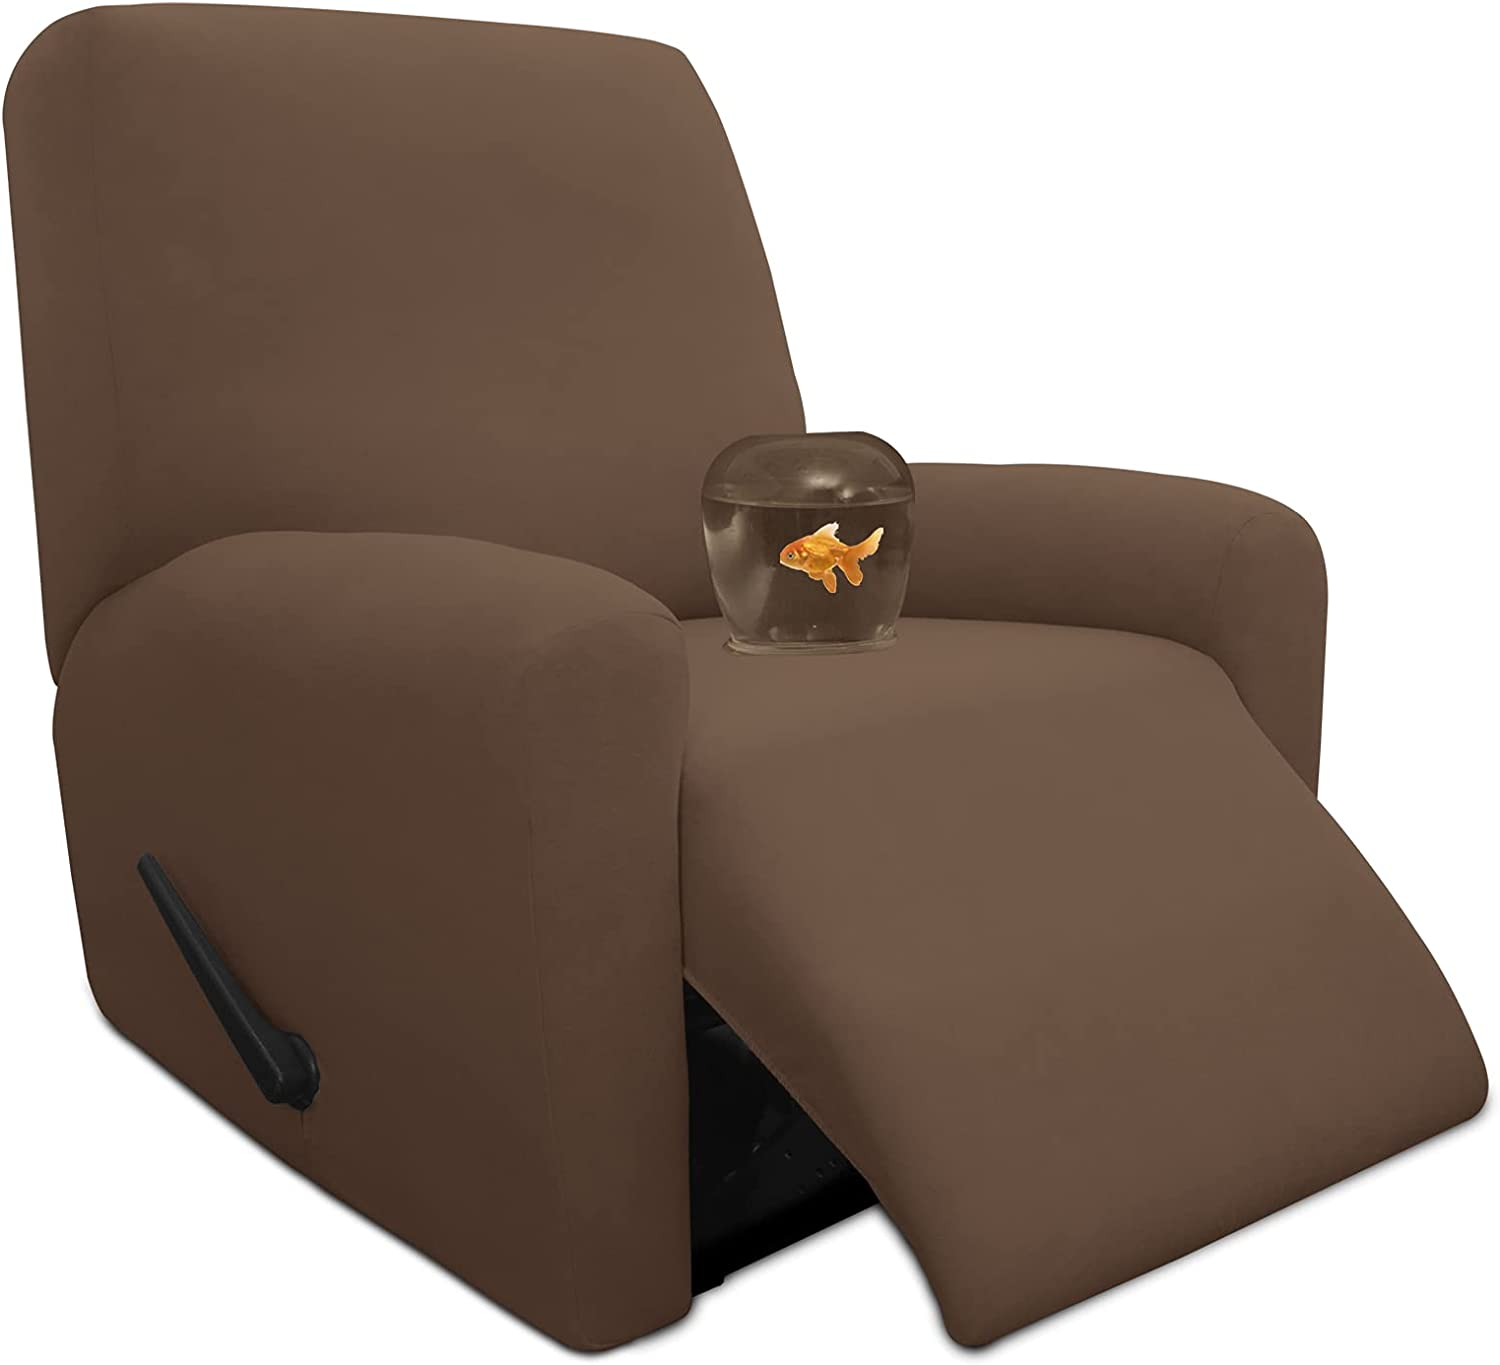 Easy-Going Philadelphia Mall 4 Pieces 100% Dual Waterproof Max 63% OFF Stretch Cover Recliner